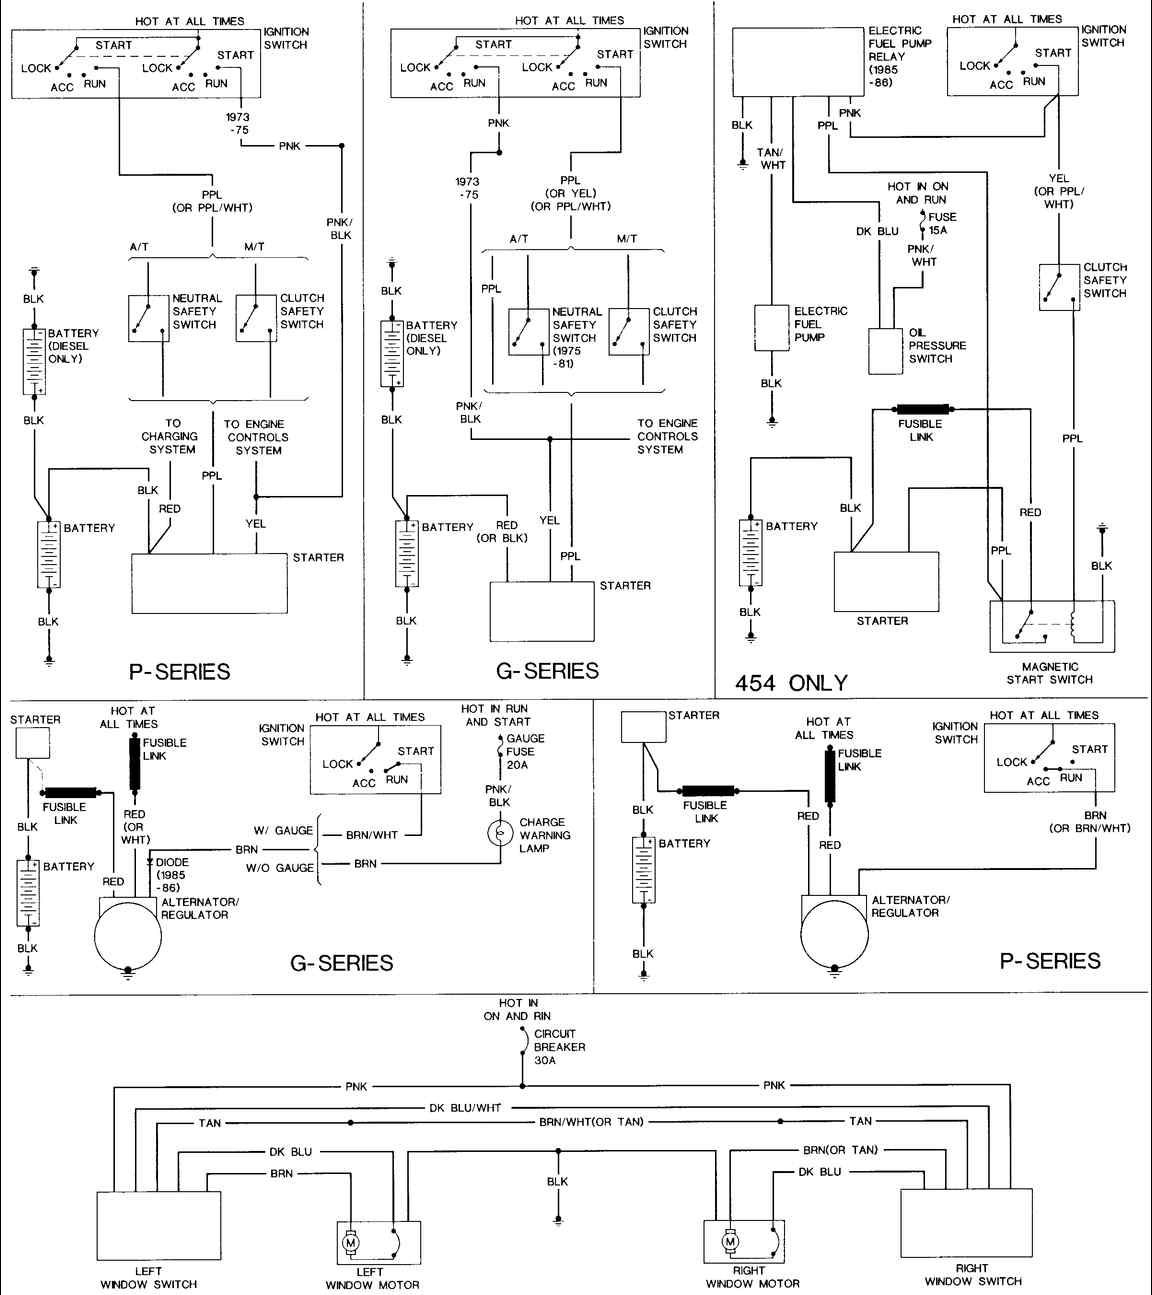 0c73623a181dc376dbb4777e2029d285 chevy starter wiring diagram gm starter diagram \u2022 wiring diagrams  at crackthecode.co